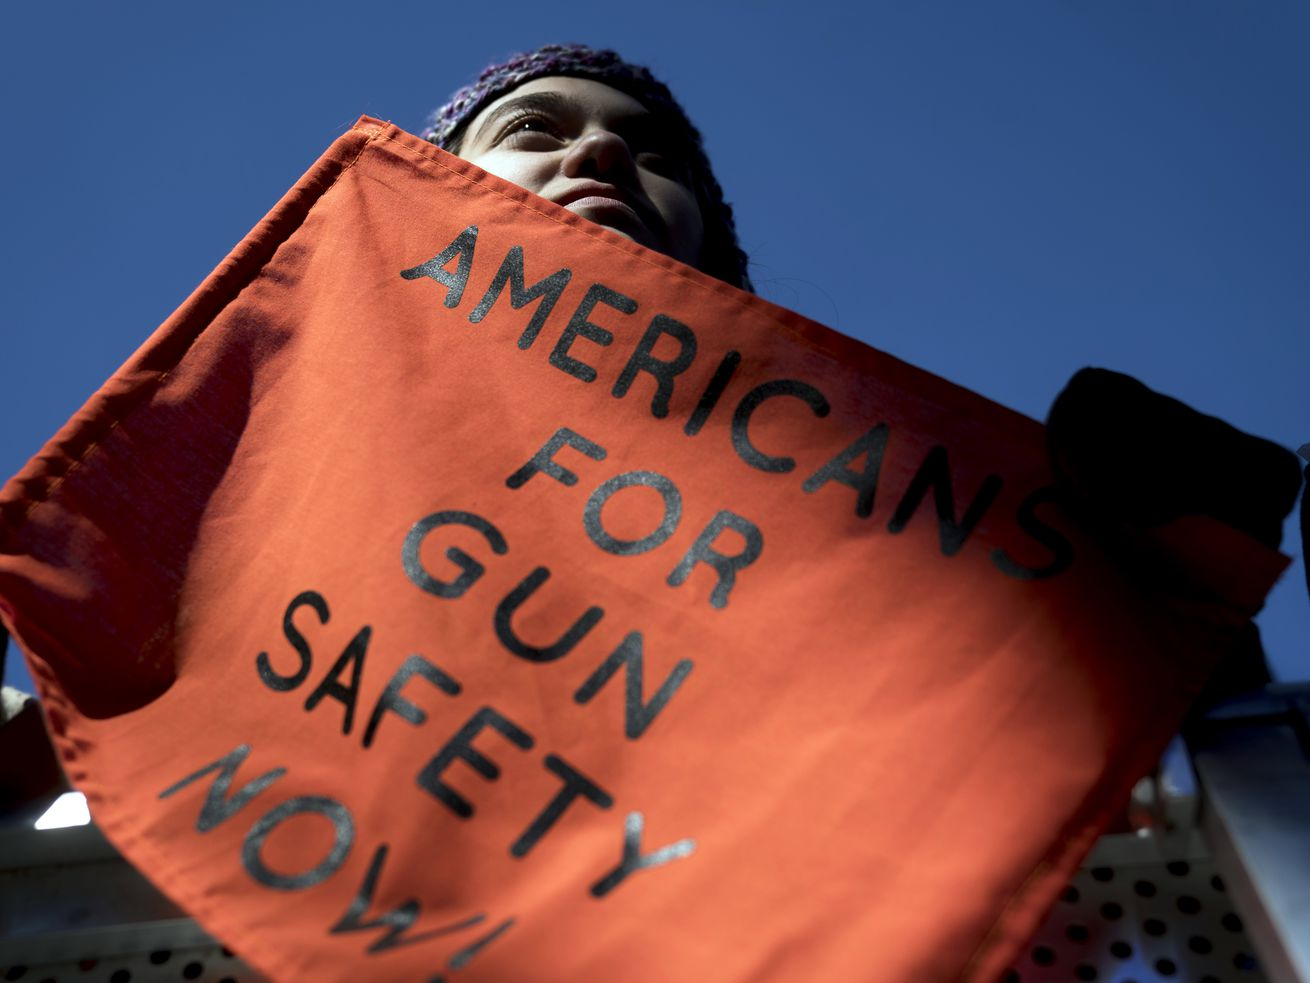 """In this March 24, 2018, file photo, Isabel White of Parkland, Fla., holds a sign that reads """"Americans for Gun Safety Now!"""" during the """"March for Our Lives"""" rally in support of gun control in Washington, that was spearheaded by teens from Marjory Stoneman Douglas High School after the 2018 mass shooting in Parkland, Fla."""